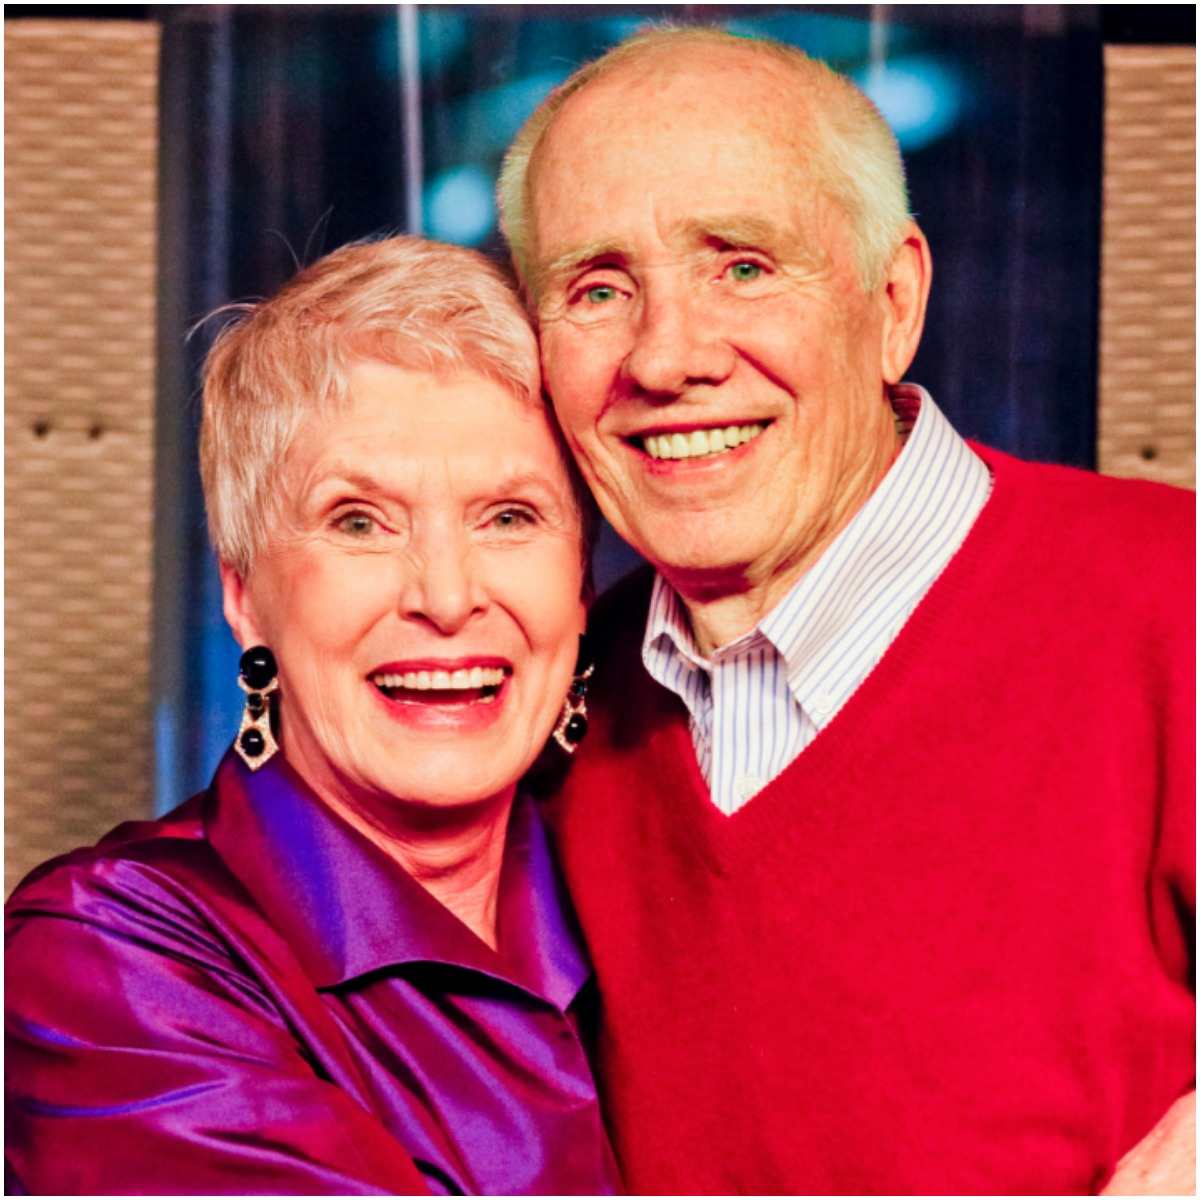 Jeanne Robertson and her husband Jerry Robertson